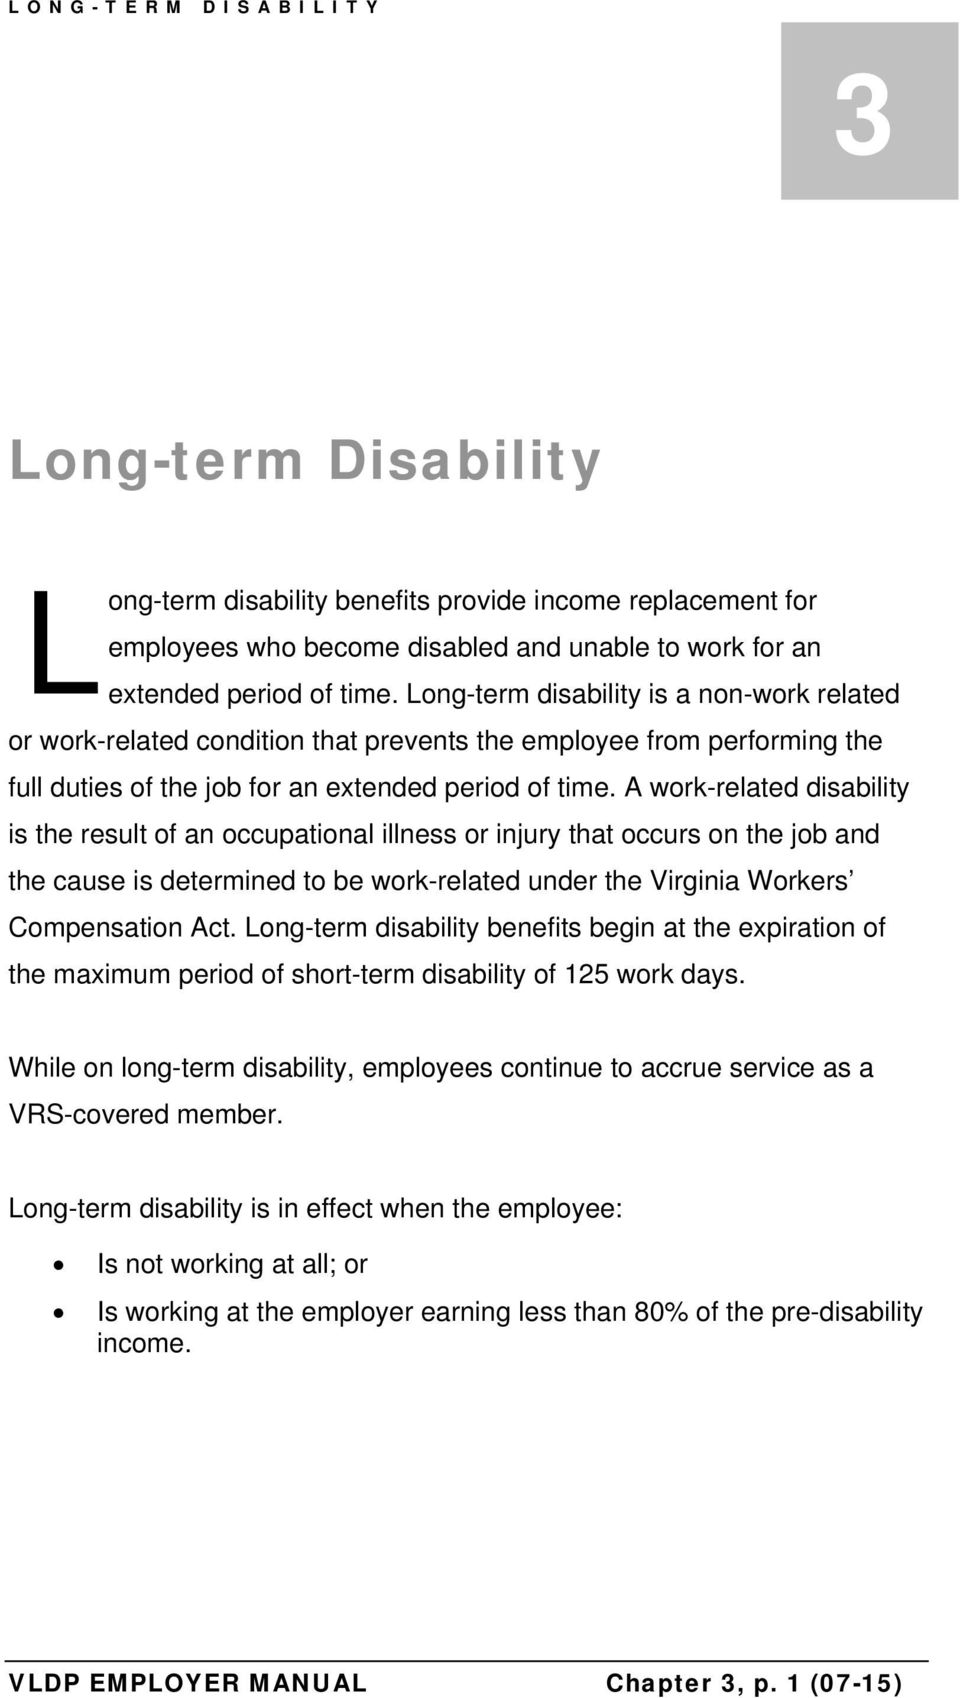 A work-related disability is the result of an occupational illness or injury that occurs on the job and the cause is determined to be work-related under the Virginia Workers Compensation Act.